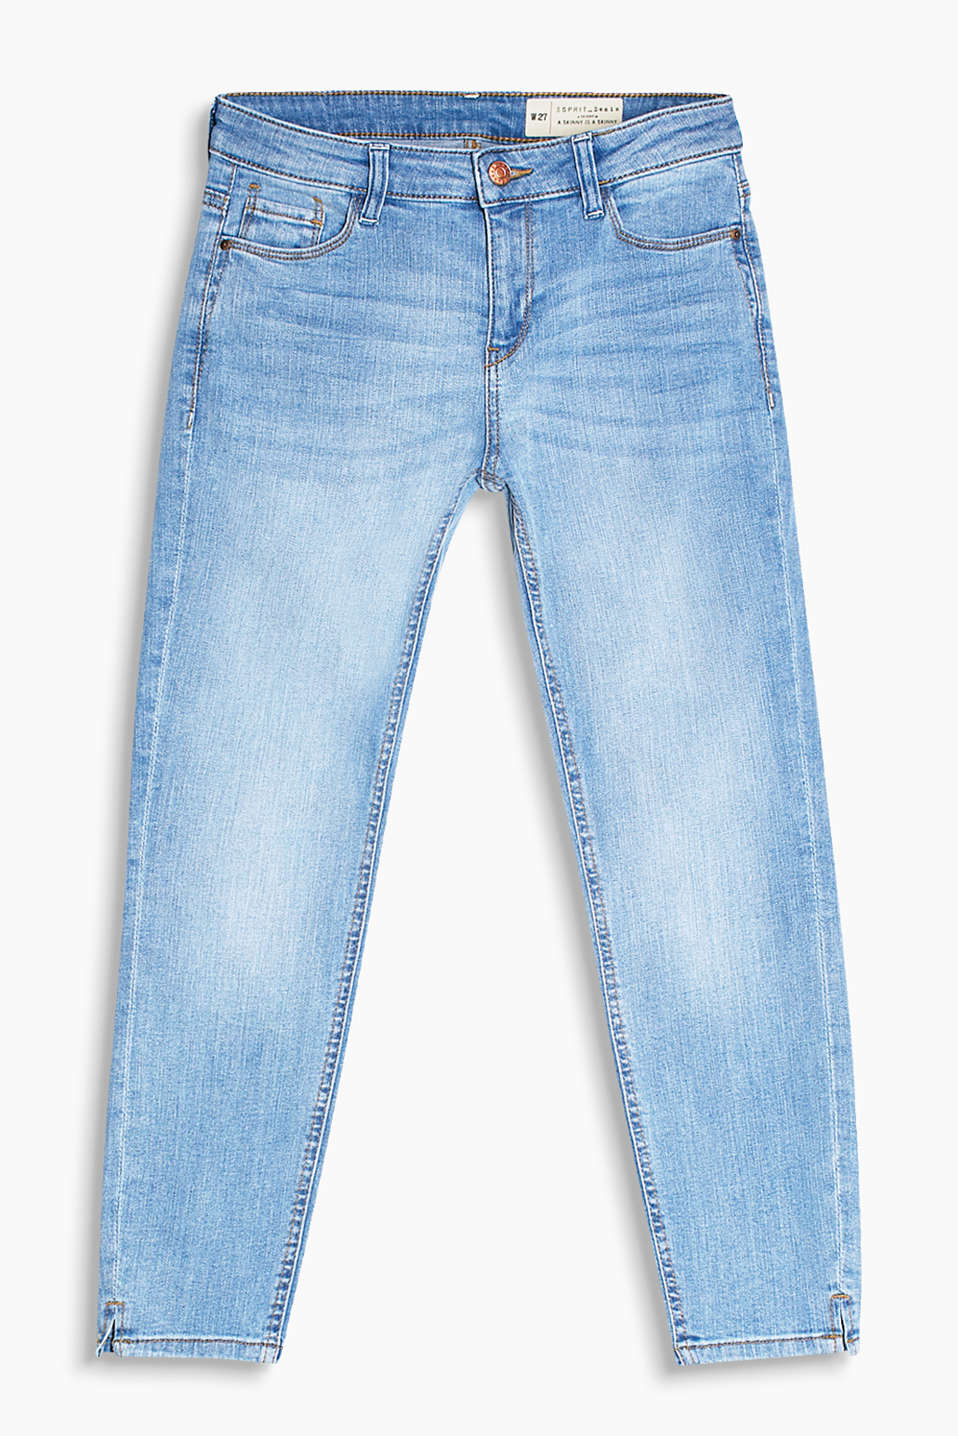 Cropped stretch jeans in a summery wash with hem slits